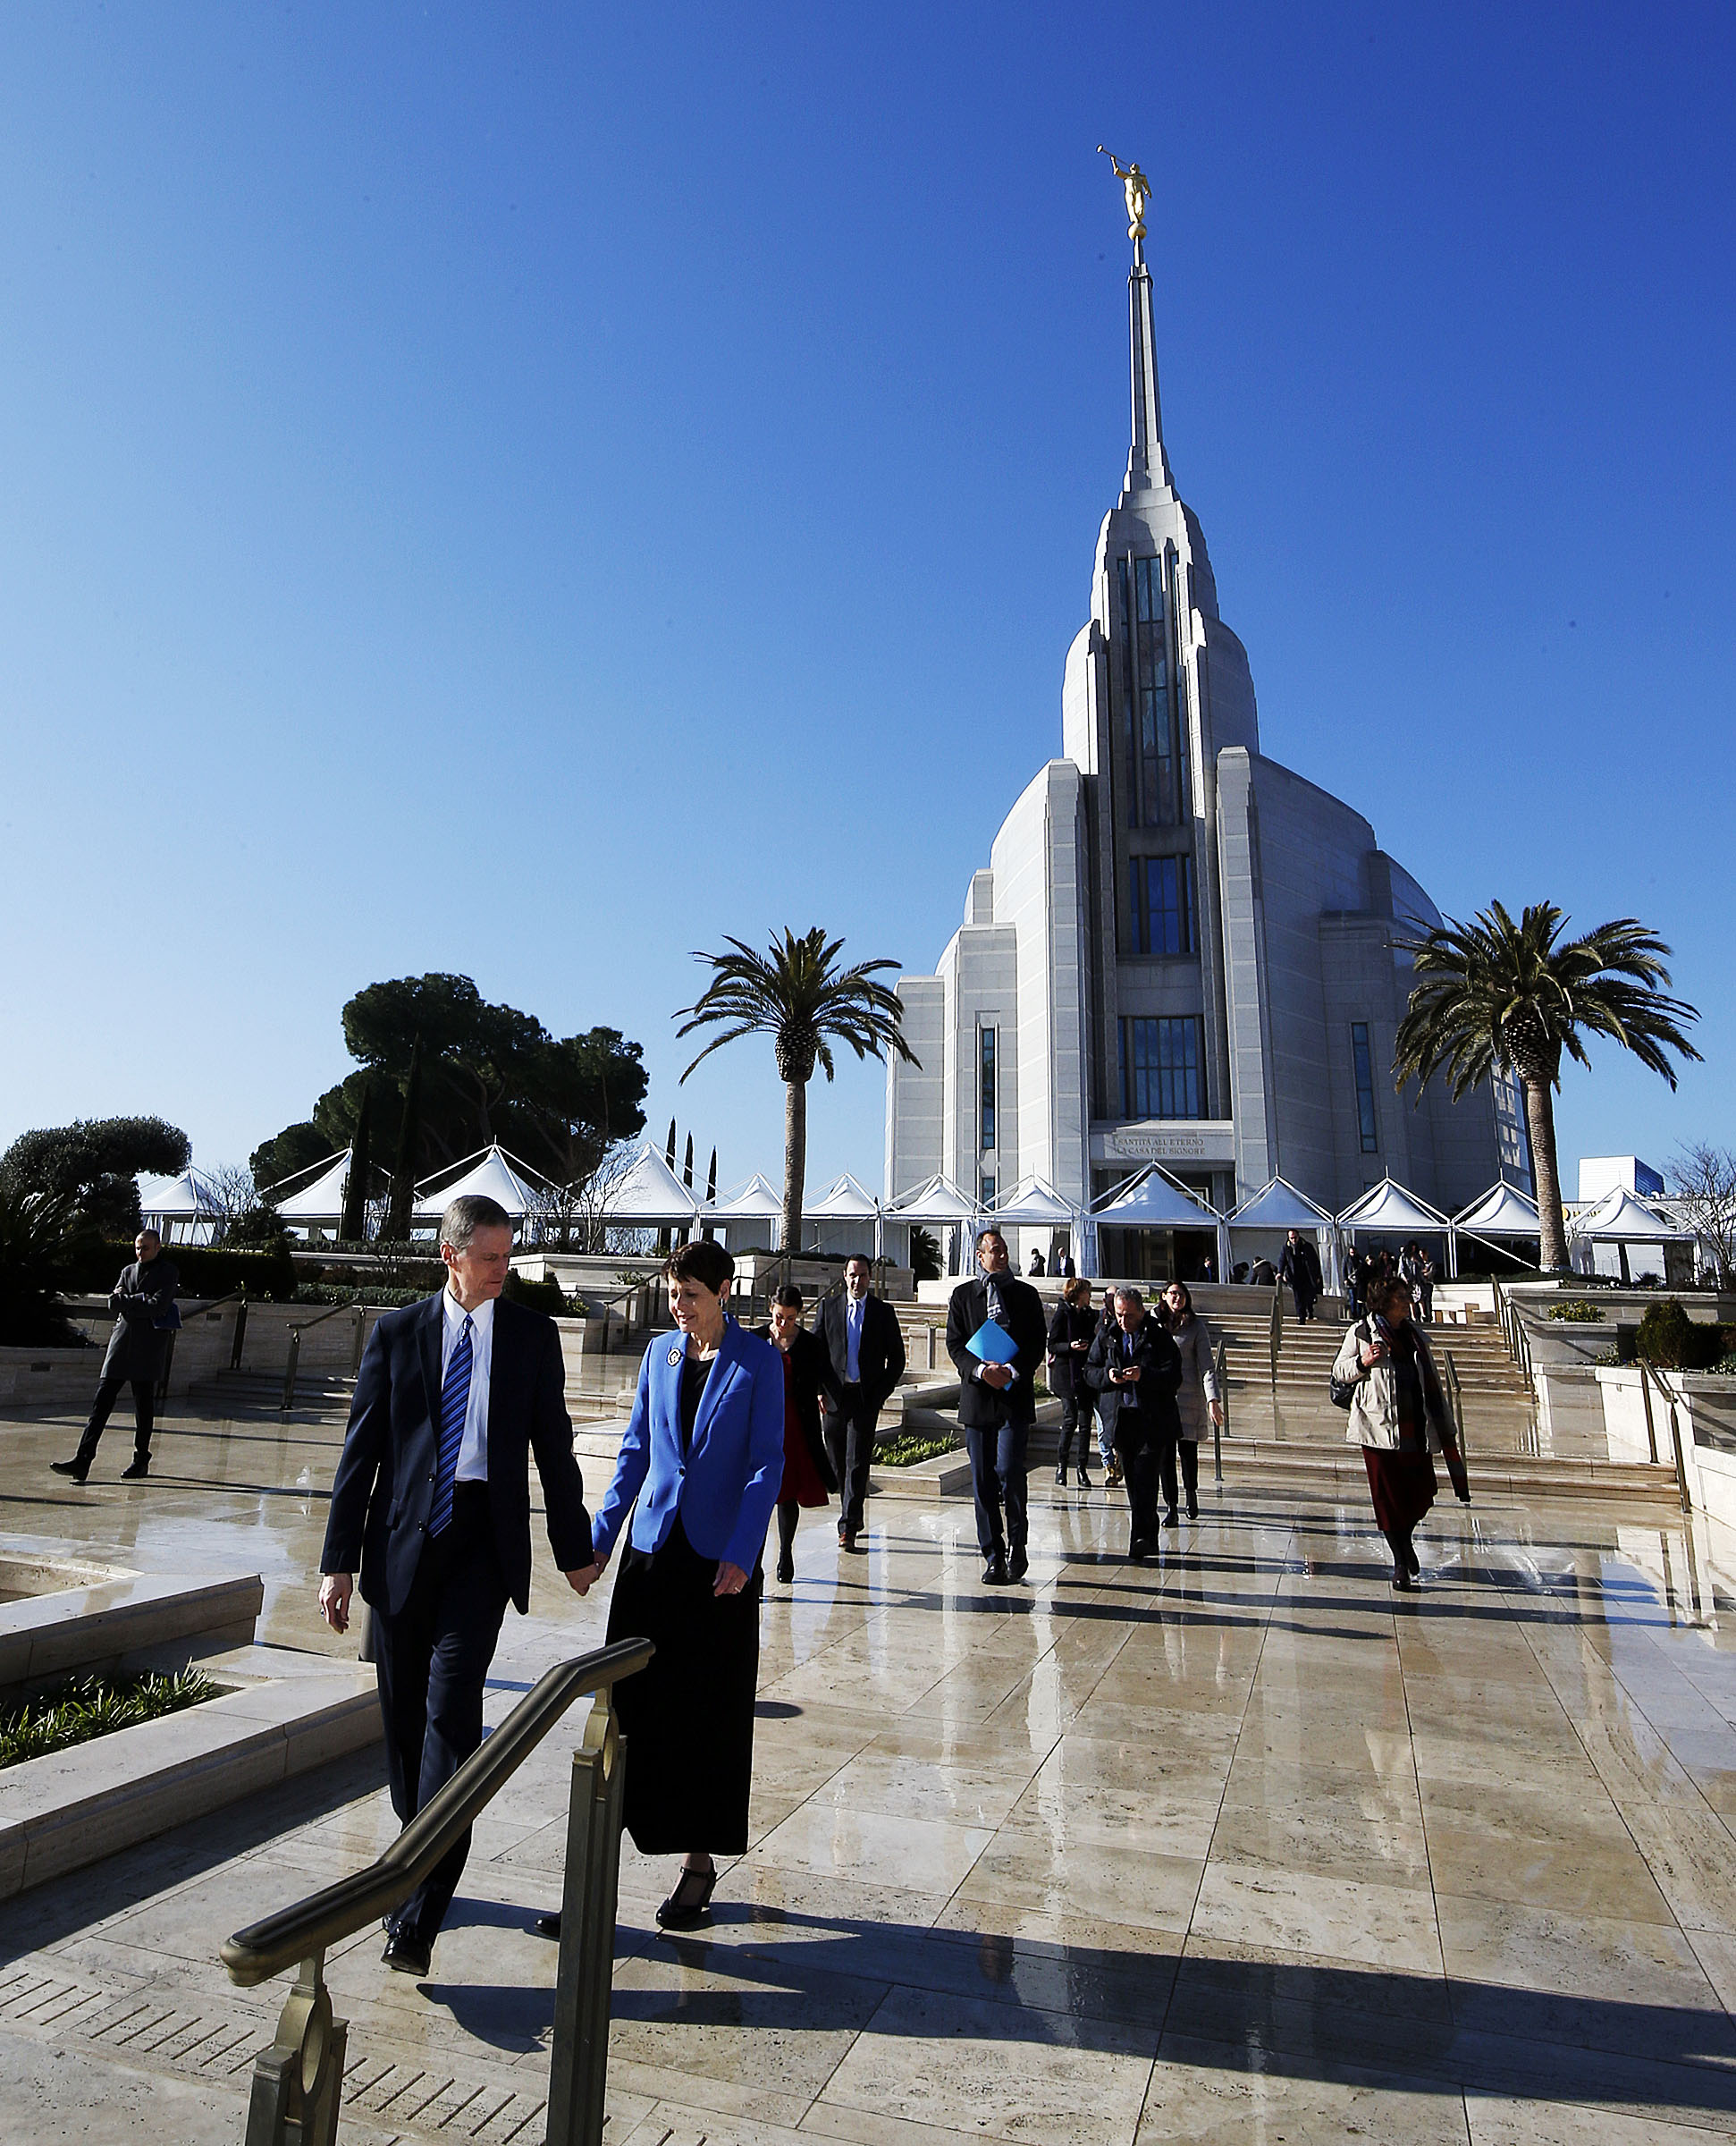 Elder David A. Bednar of the Quorum of the Twelve Apostles and his wife, Sister Susan Bednar, walk from the Rome Italy Temple to the Rome Temple Visitors' Center of The Church of Jesus Christ of Latter-day Saints on Monday, Jan. 14, 2019. Rome City officials and other dignitaries follow behind.